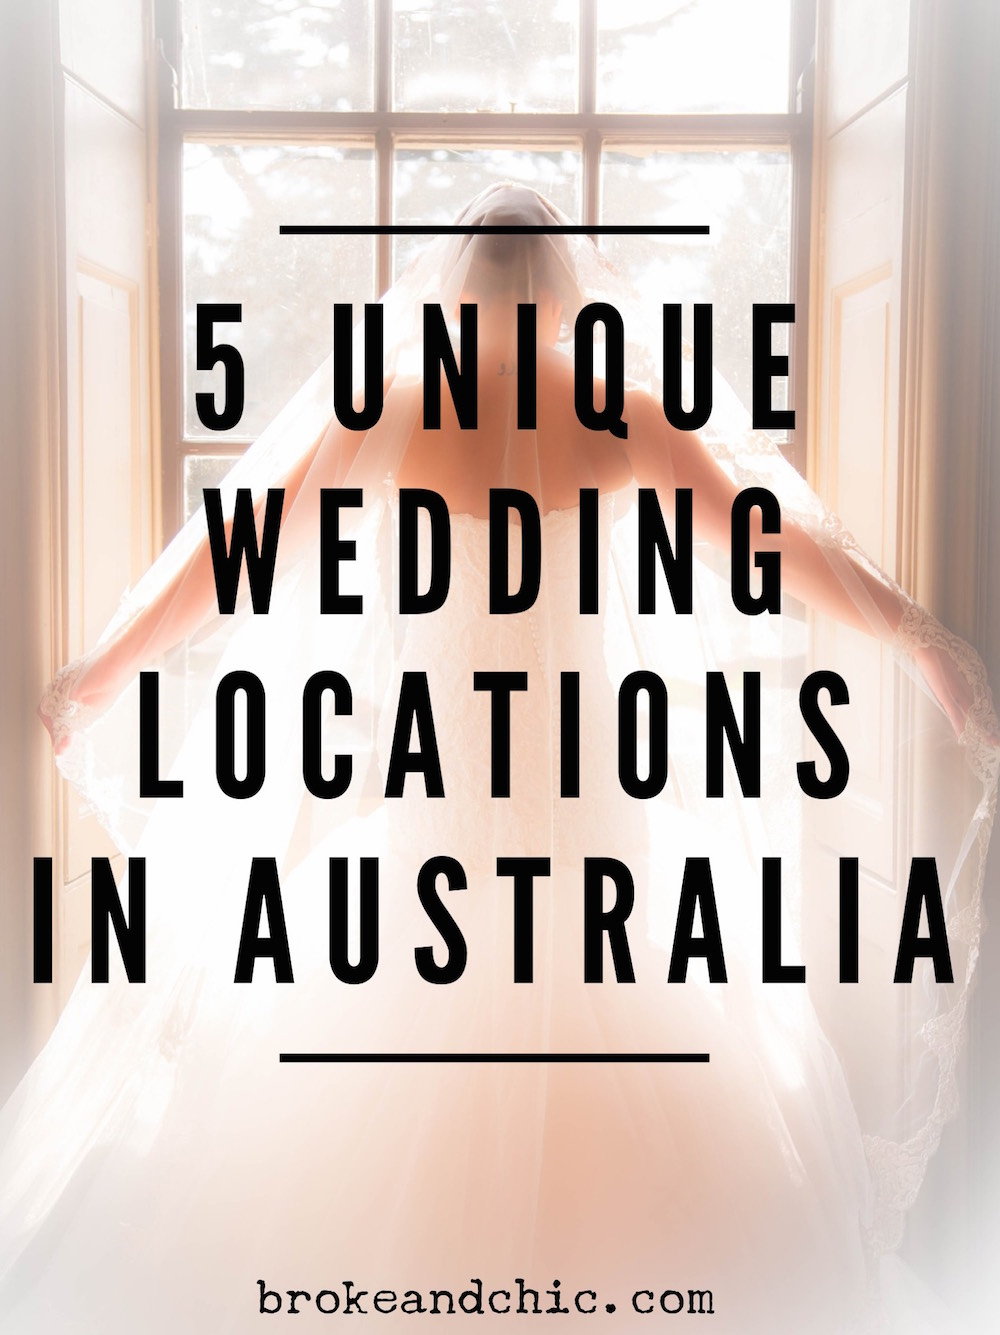 5 Unique Wedding Locations in Australia // brokeandchic.com